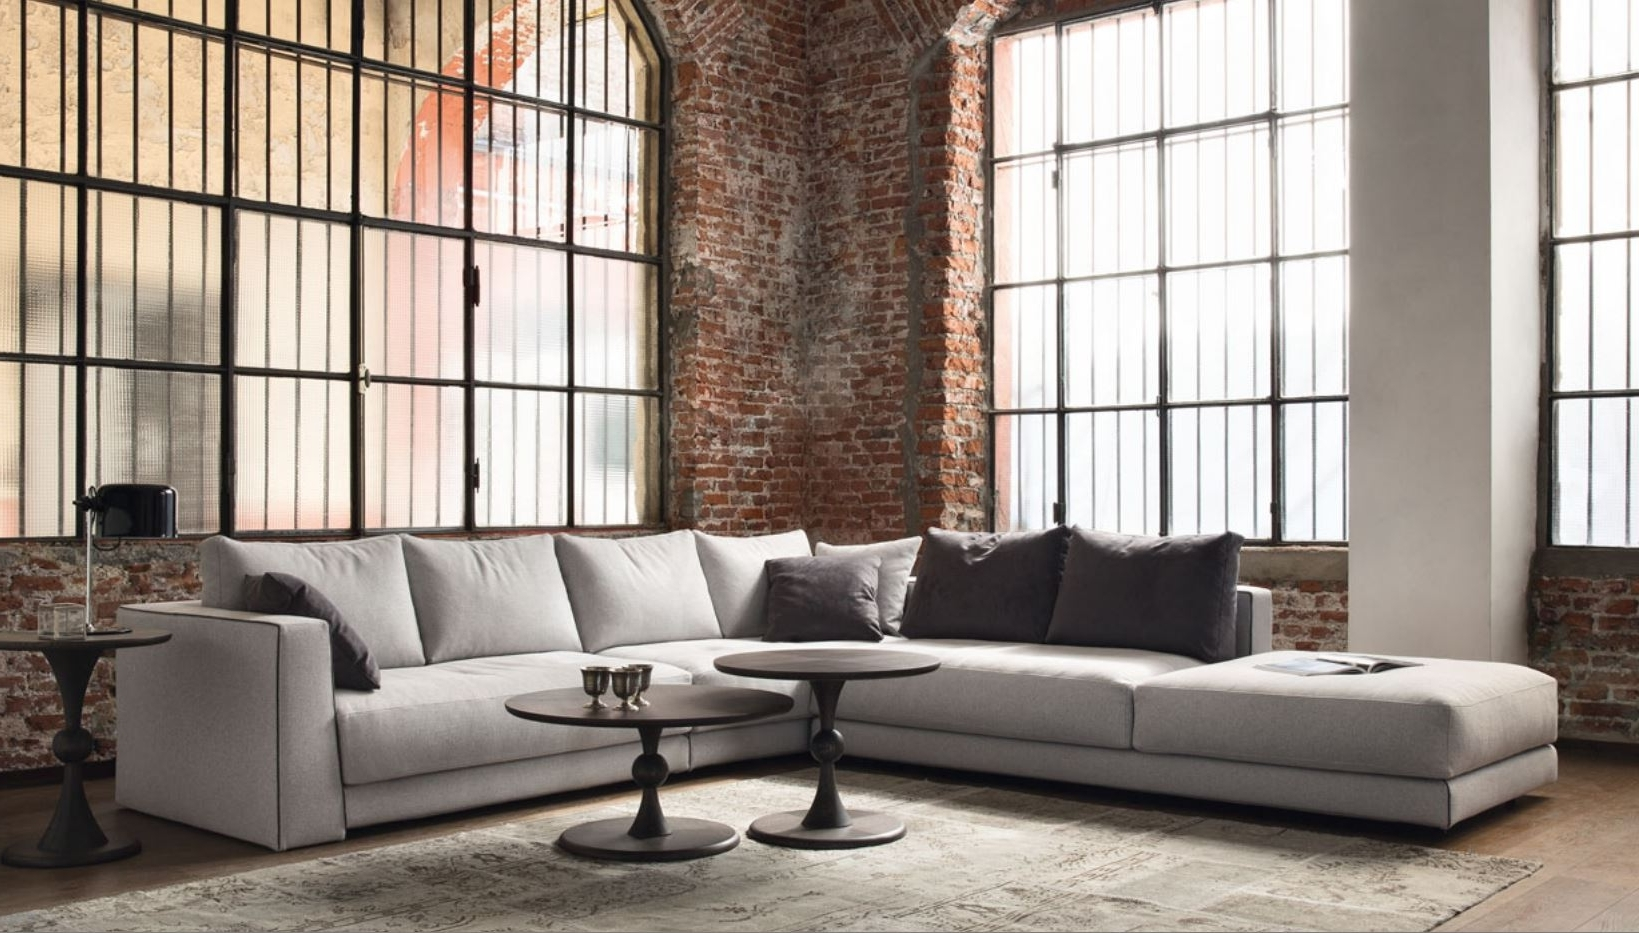 Modern Sofas,modern Furniture,design Sofas – Sectional Modern Sofa For Most Current Wide Sectional Sofas (Gallery 14 of 20)